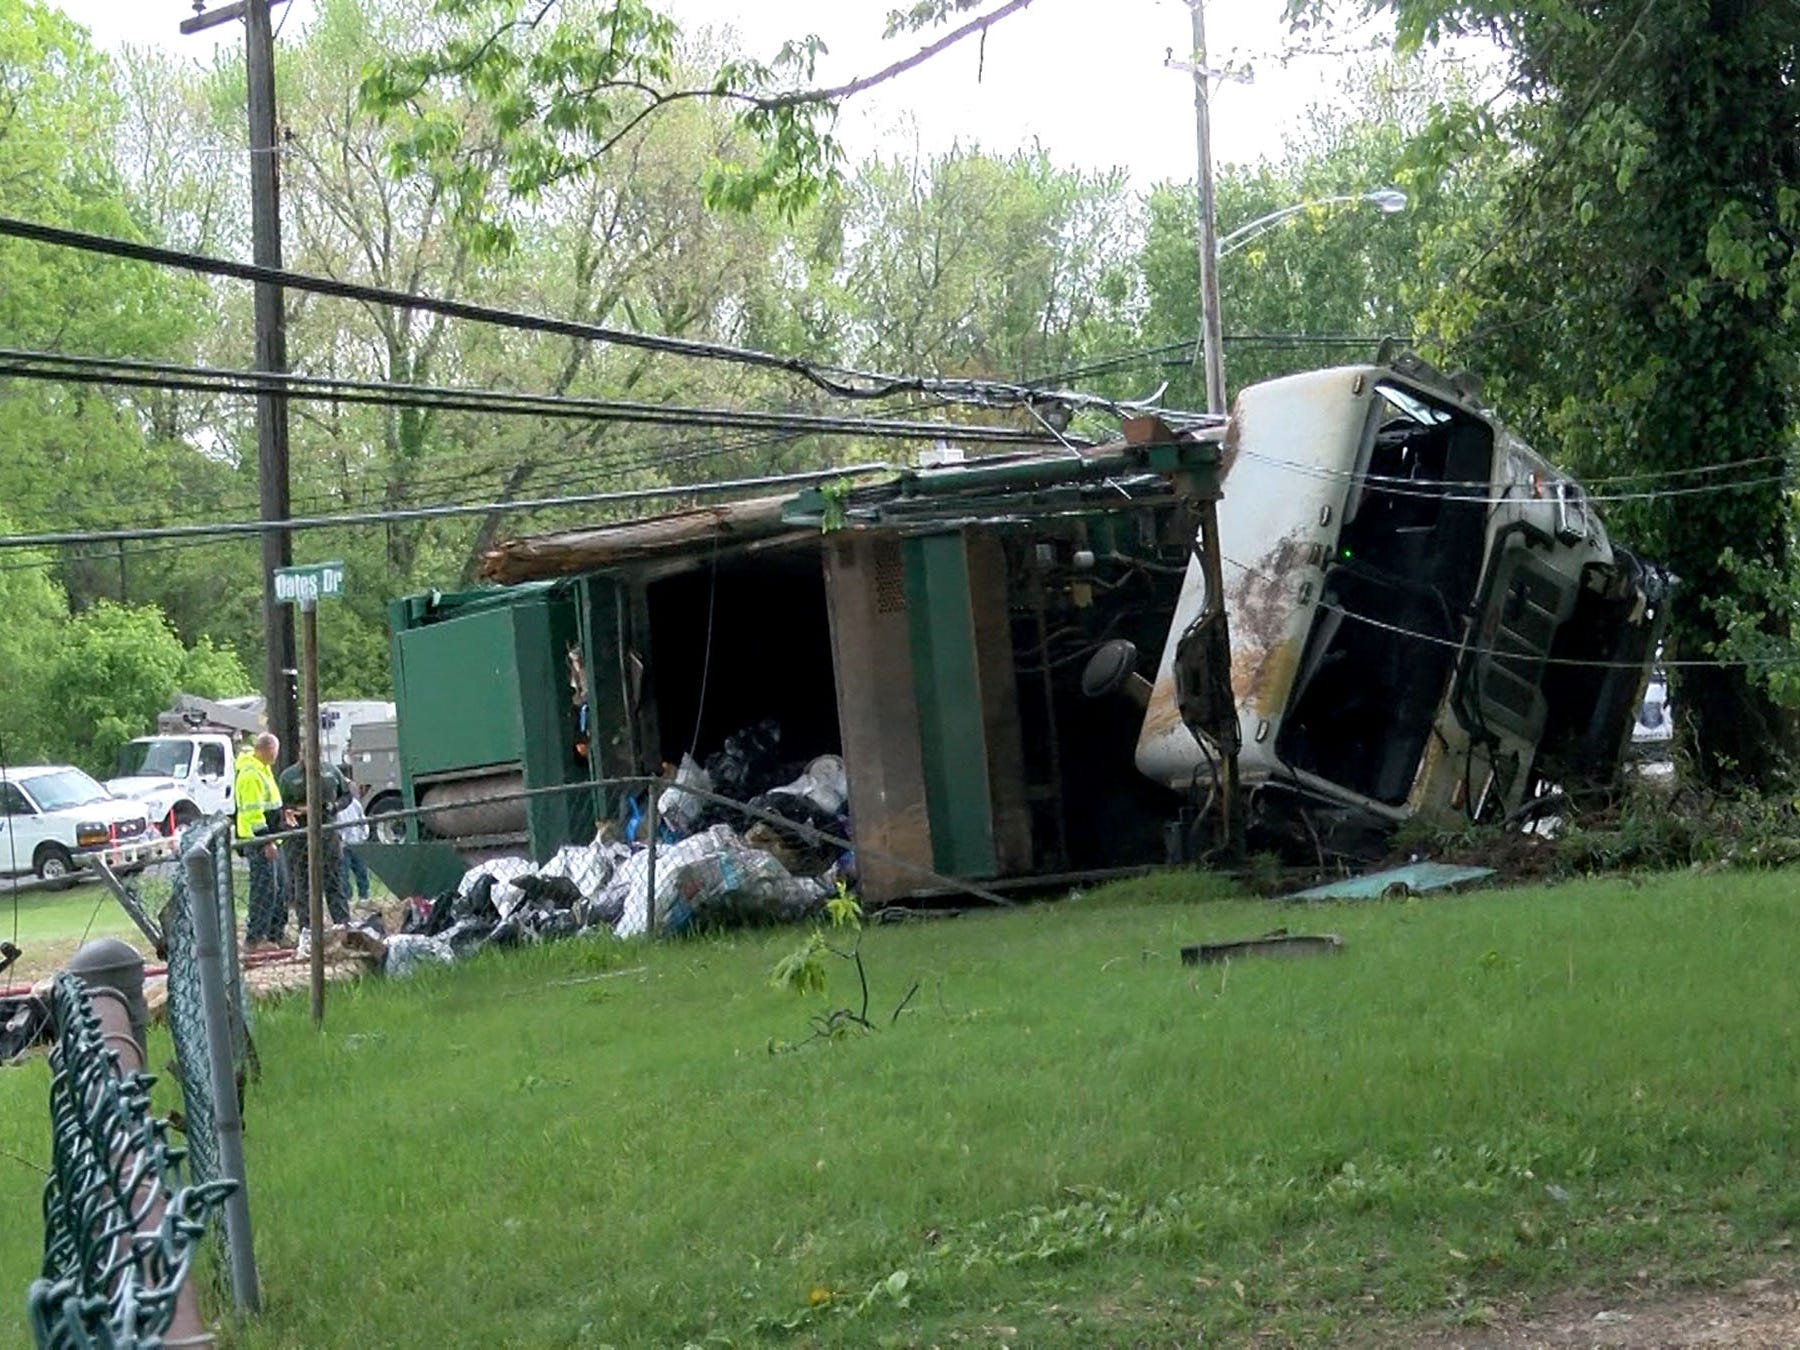 A Waste Management garbage truck overturned on West Farms Road at Casino Drive in Howell Township Tuesday morning, May 14, 2019.  At least two people were injured in the collison that spilled garbage on the roadway and cracked a poer pole.